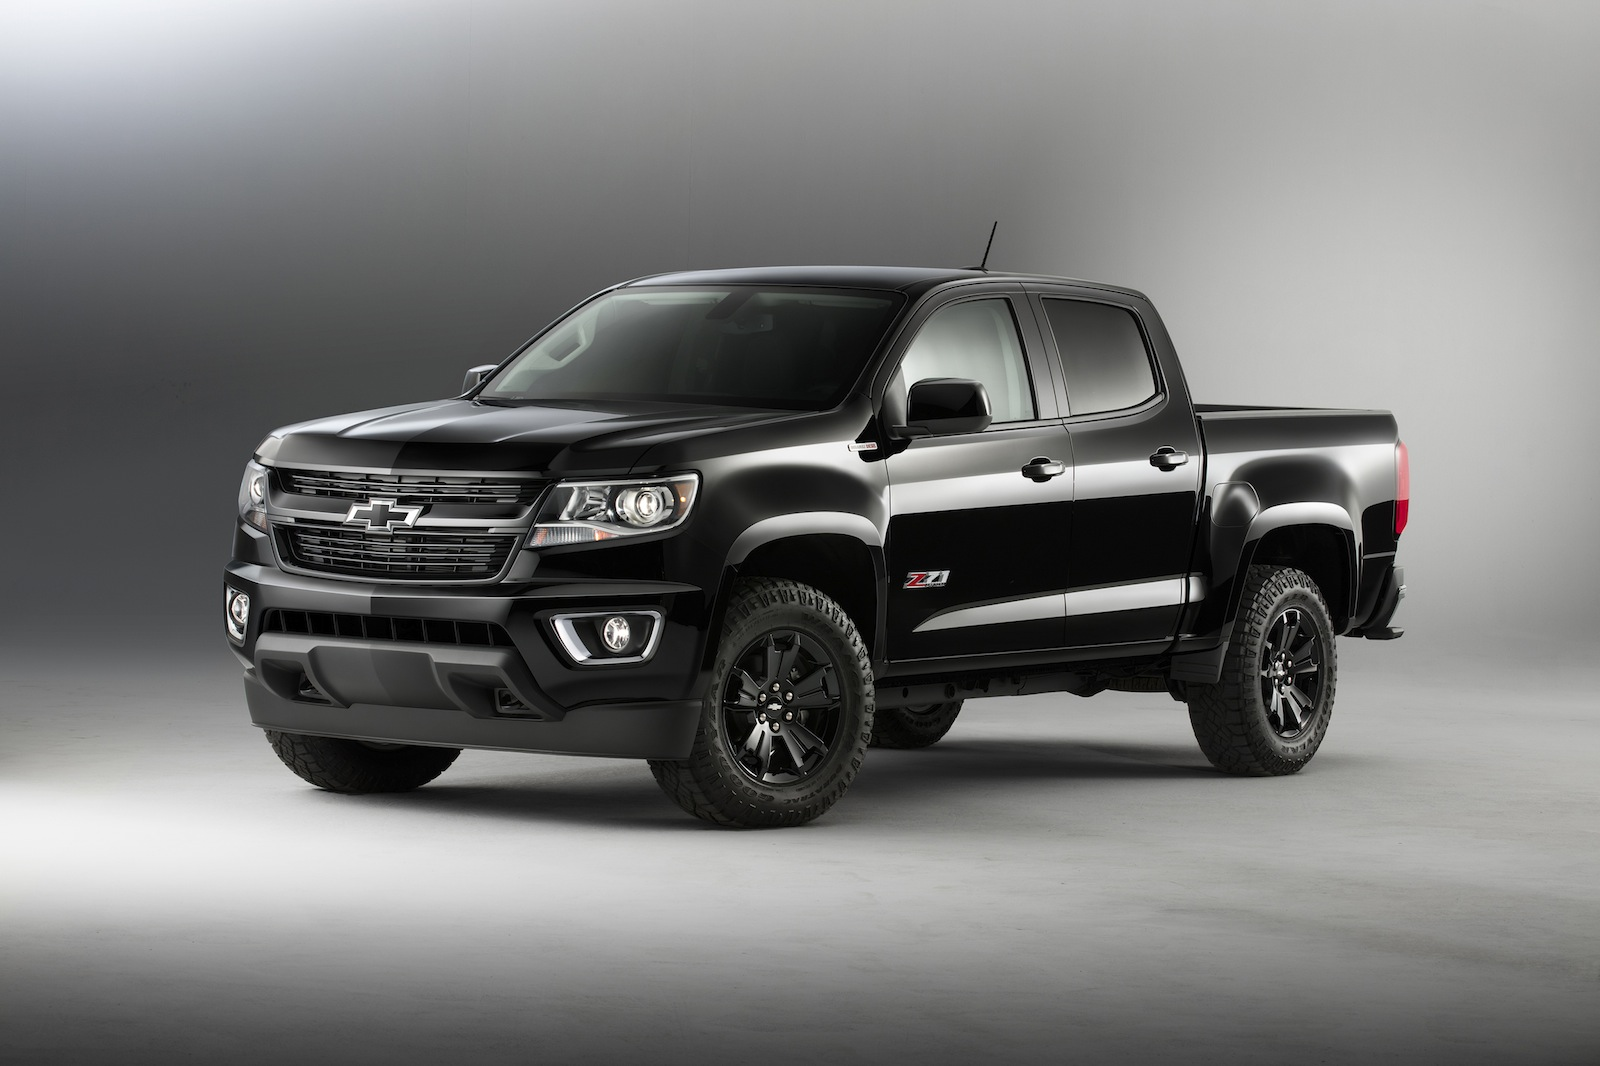 2016 chevy trucks go dark with midnight editions » autoguide news